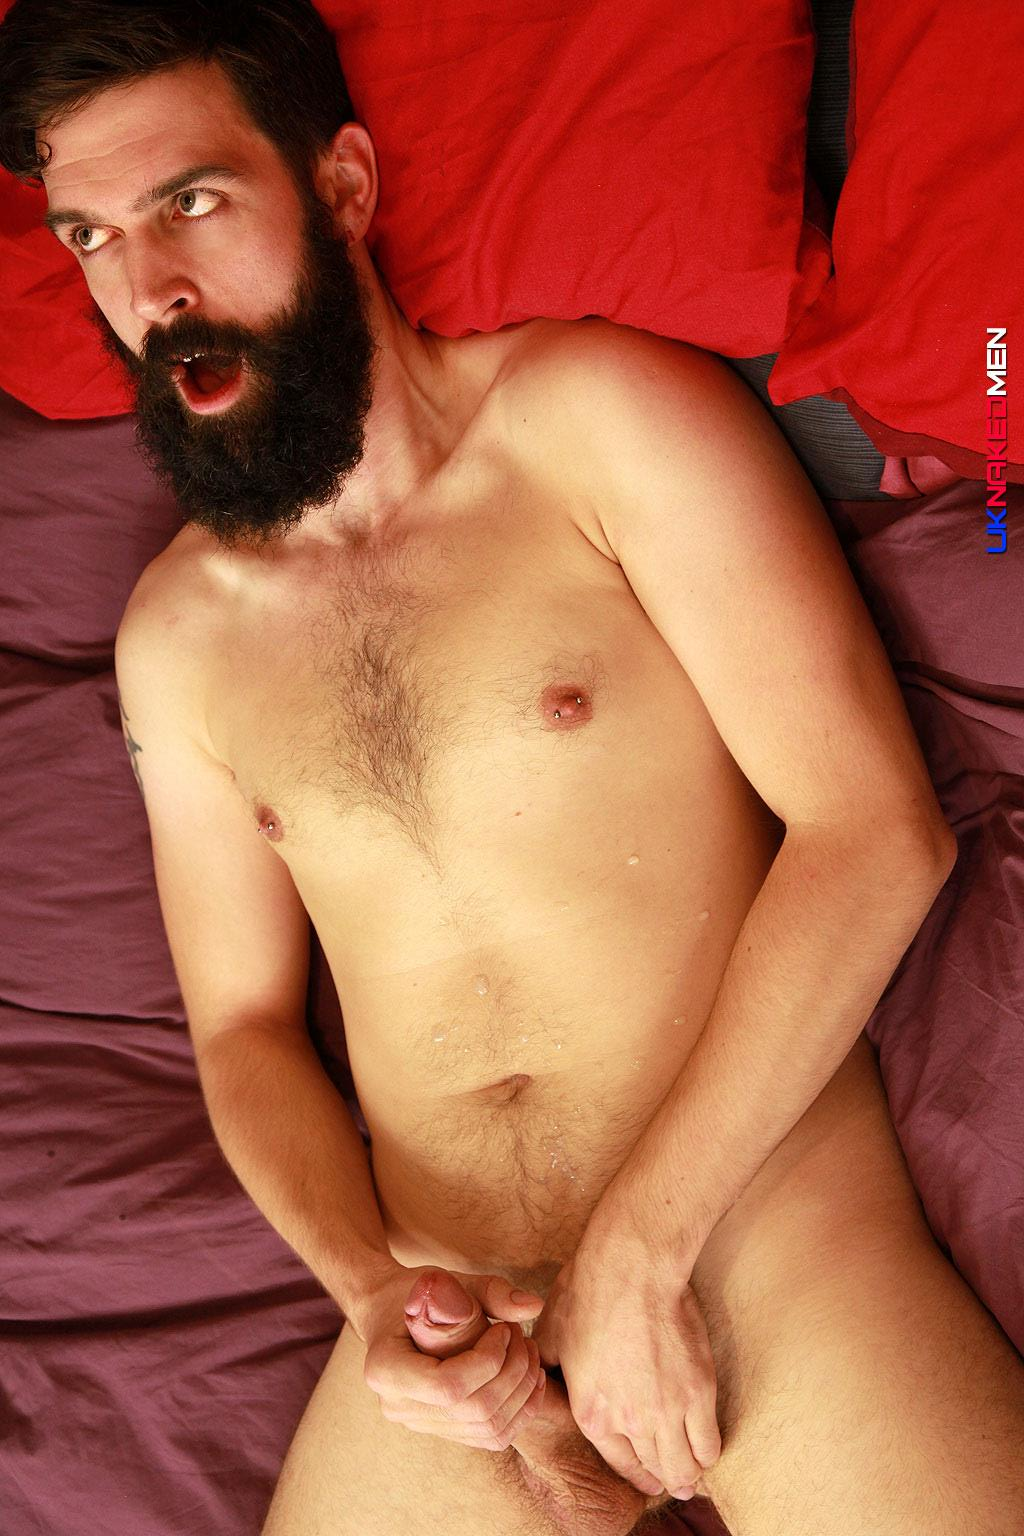 UK-Naked-Men-Tom-Long-Bearded-Guy-With-A-Big-Uncut-Cock-Jerk-Off-Amateur-Gay-Porn-13 Bearded Guy From England Jerking His Big Uncut Cock